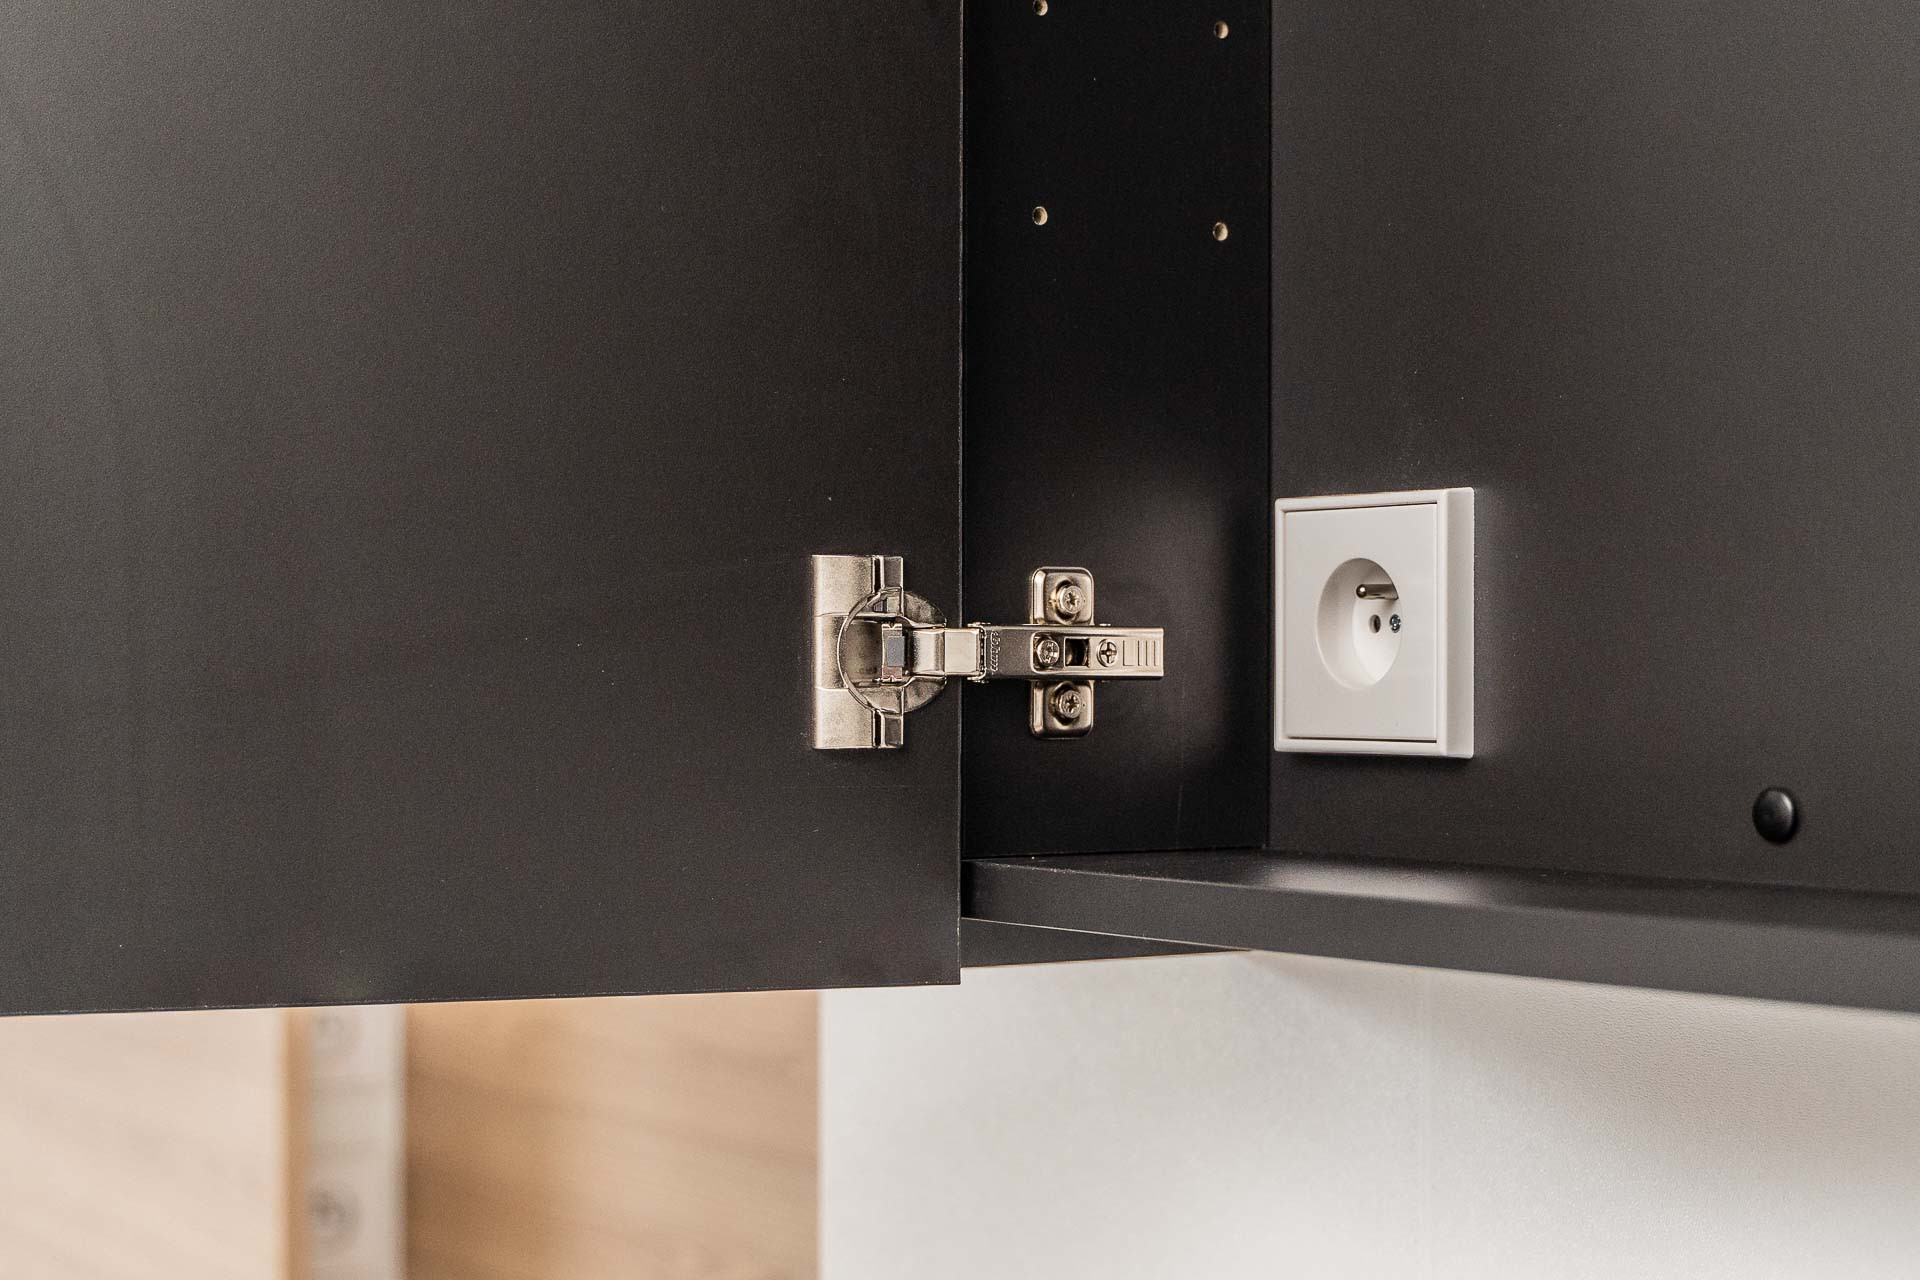 Mirror cabinet with electric socket